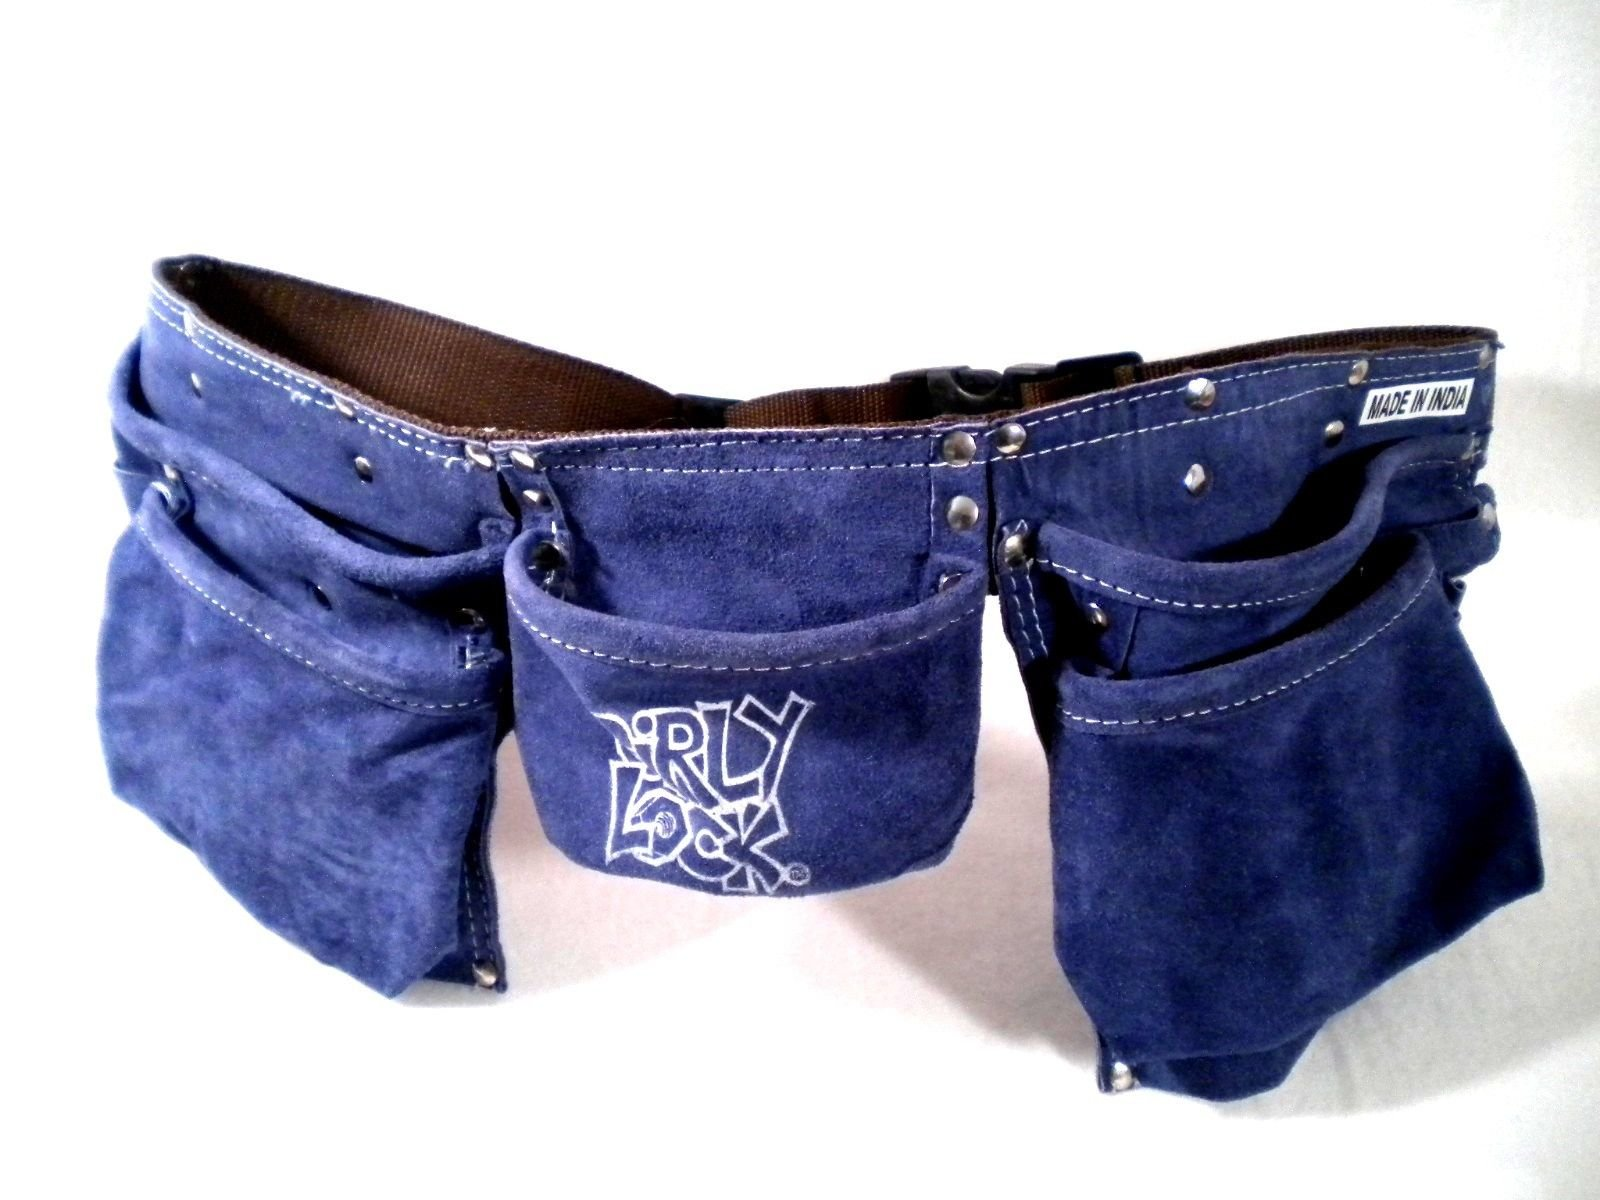 Girly Lock Women Blue Adjustable Leather 11 Pockets Tool Belt